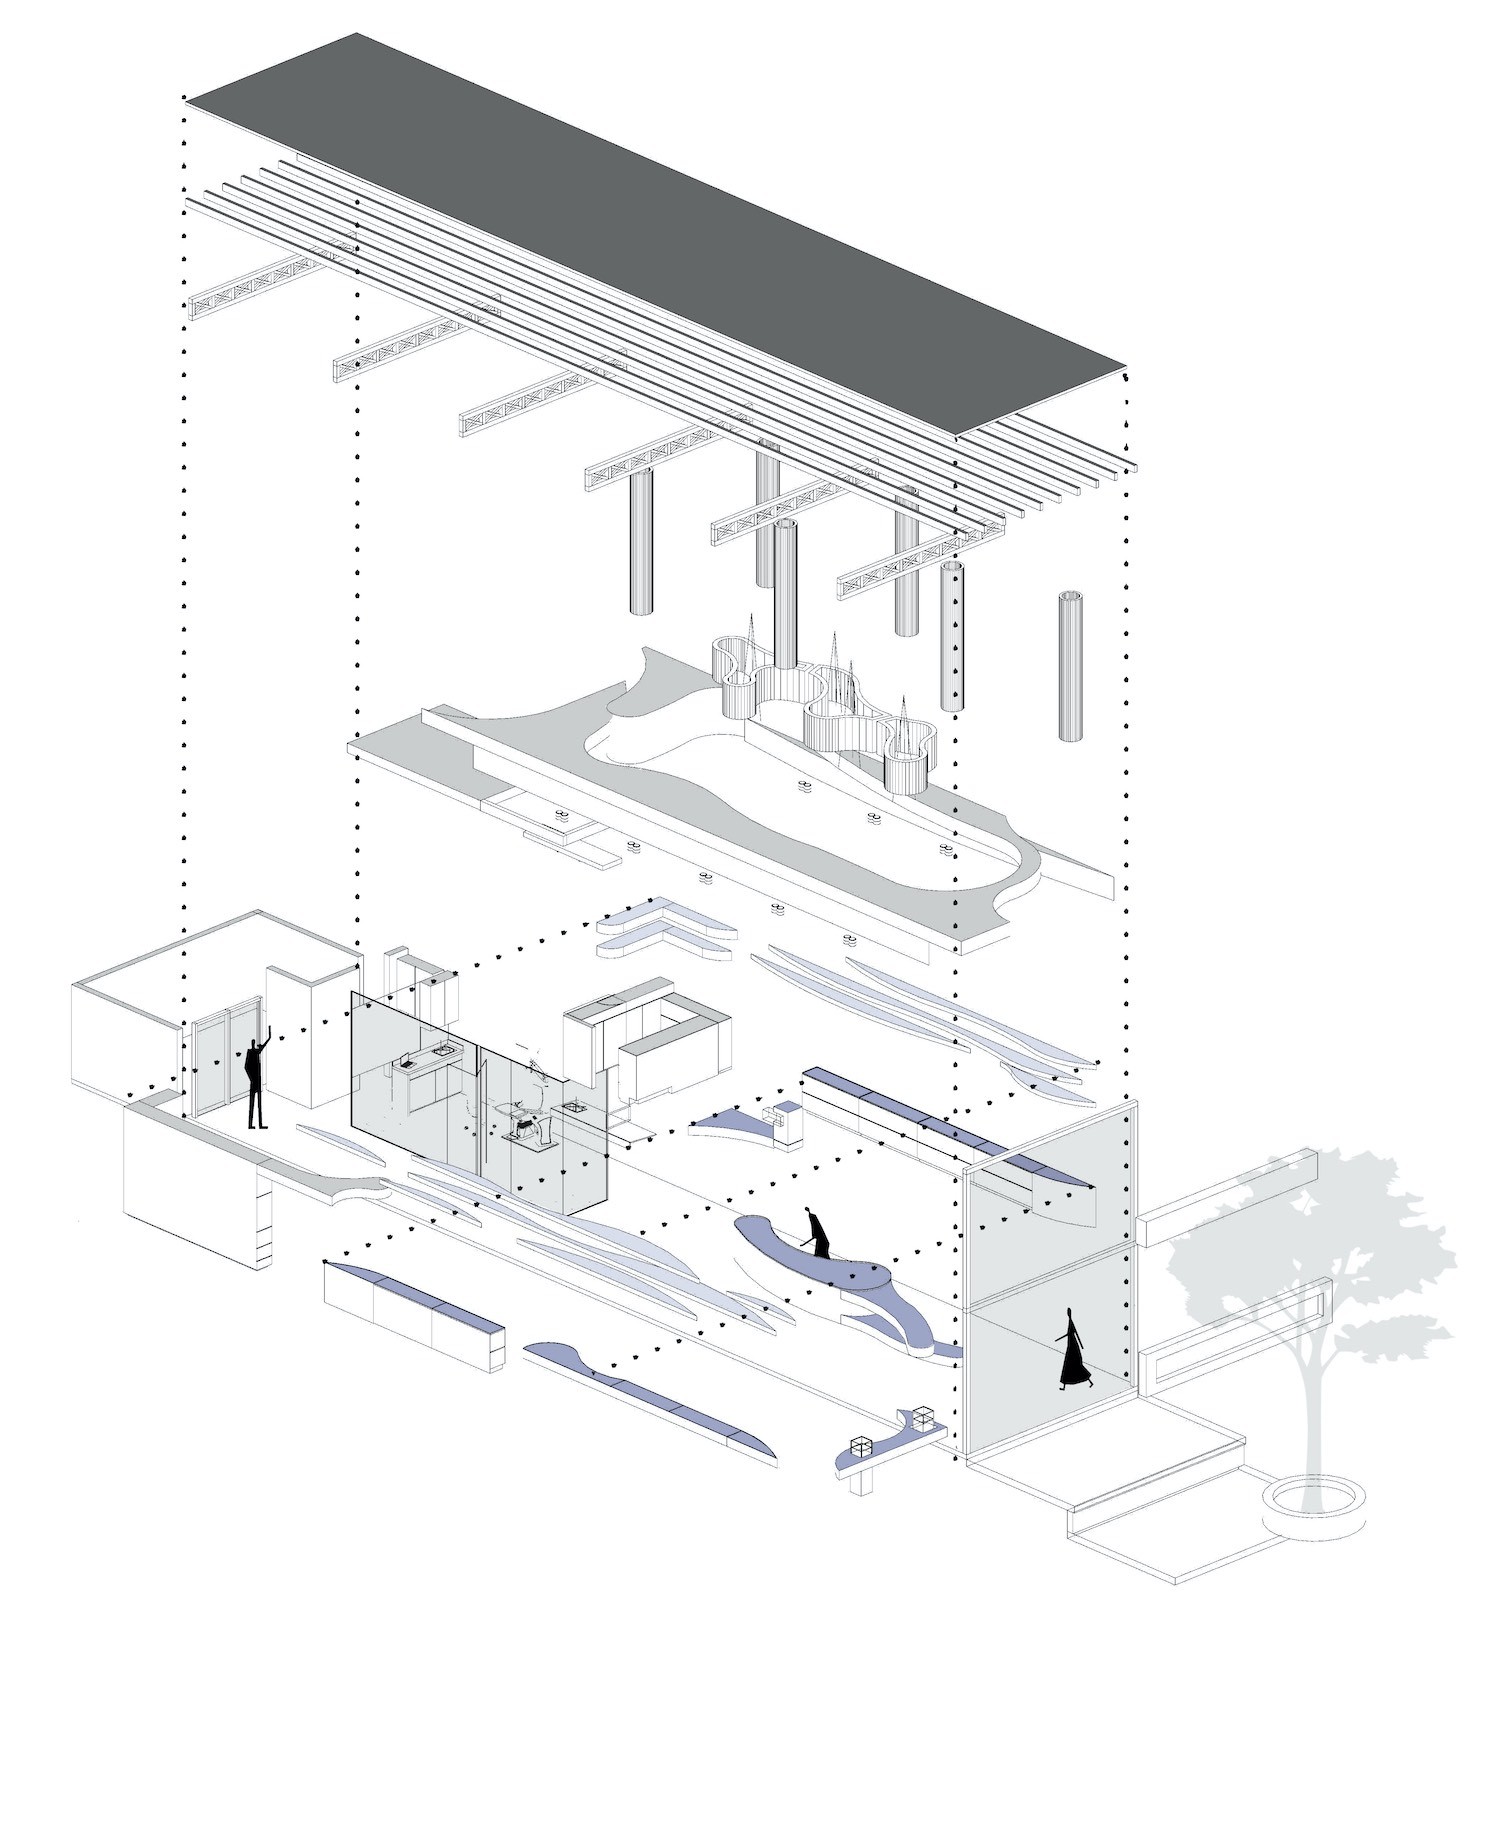 architectural drawing detail